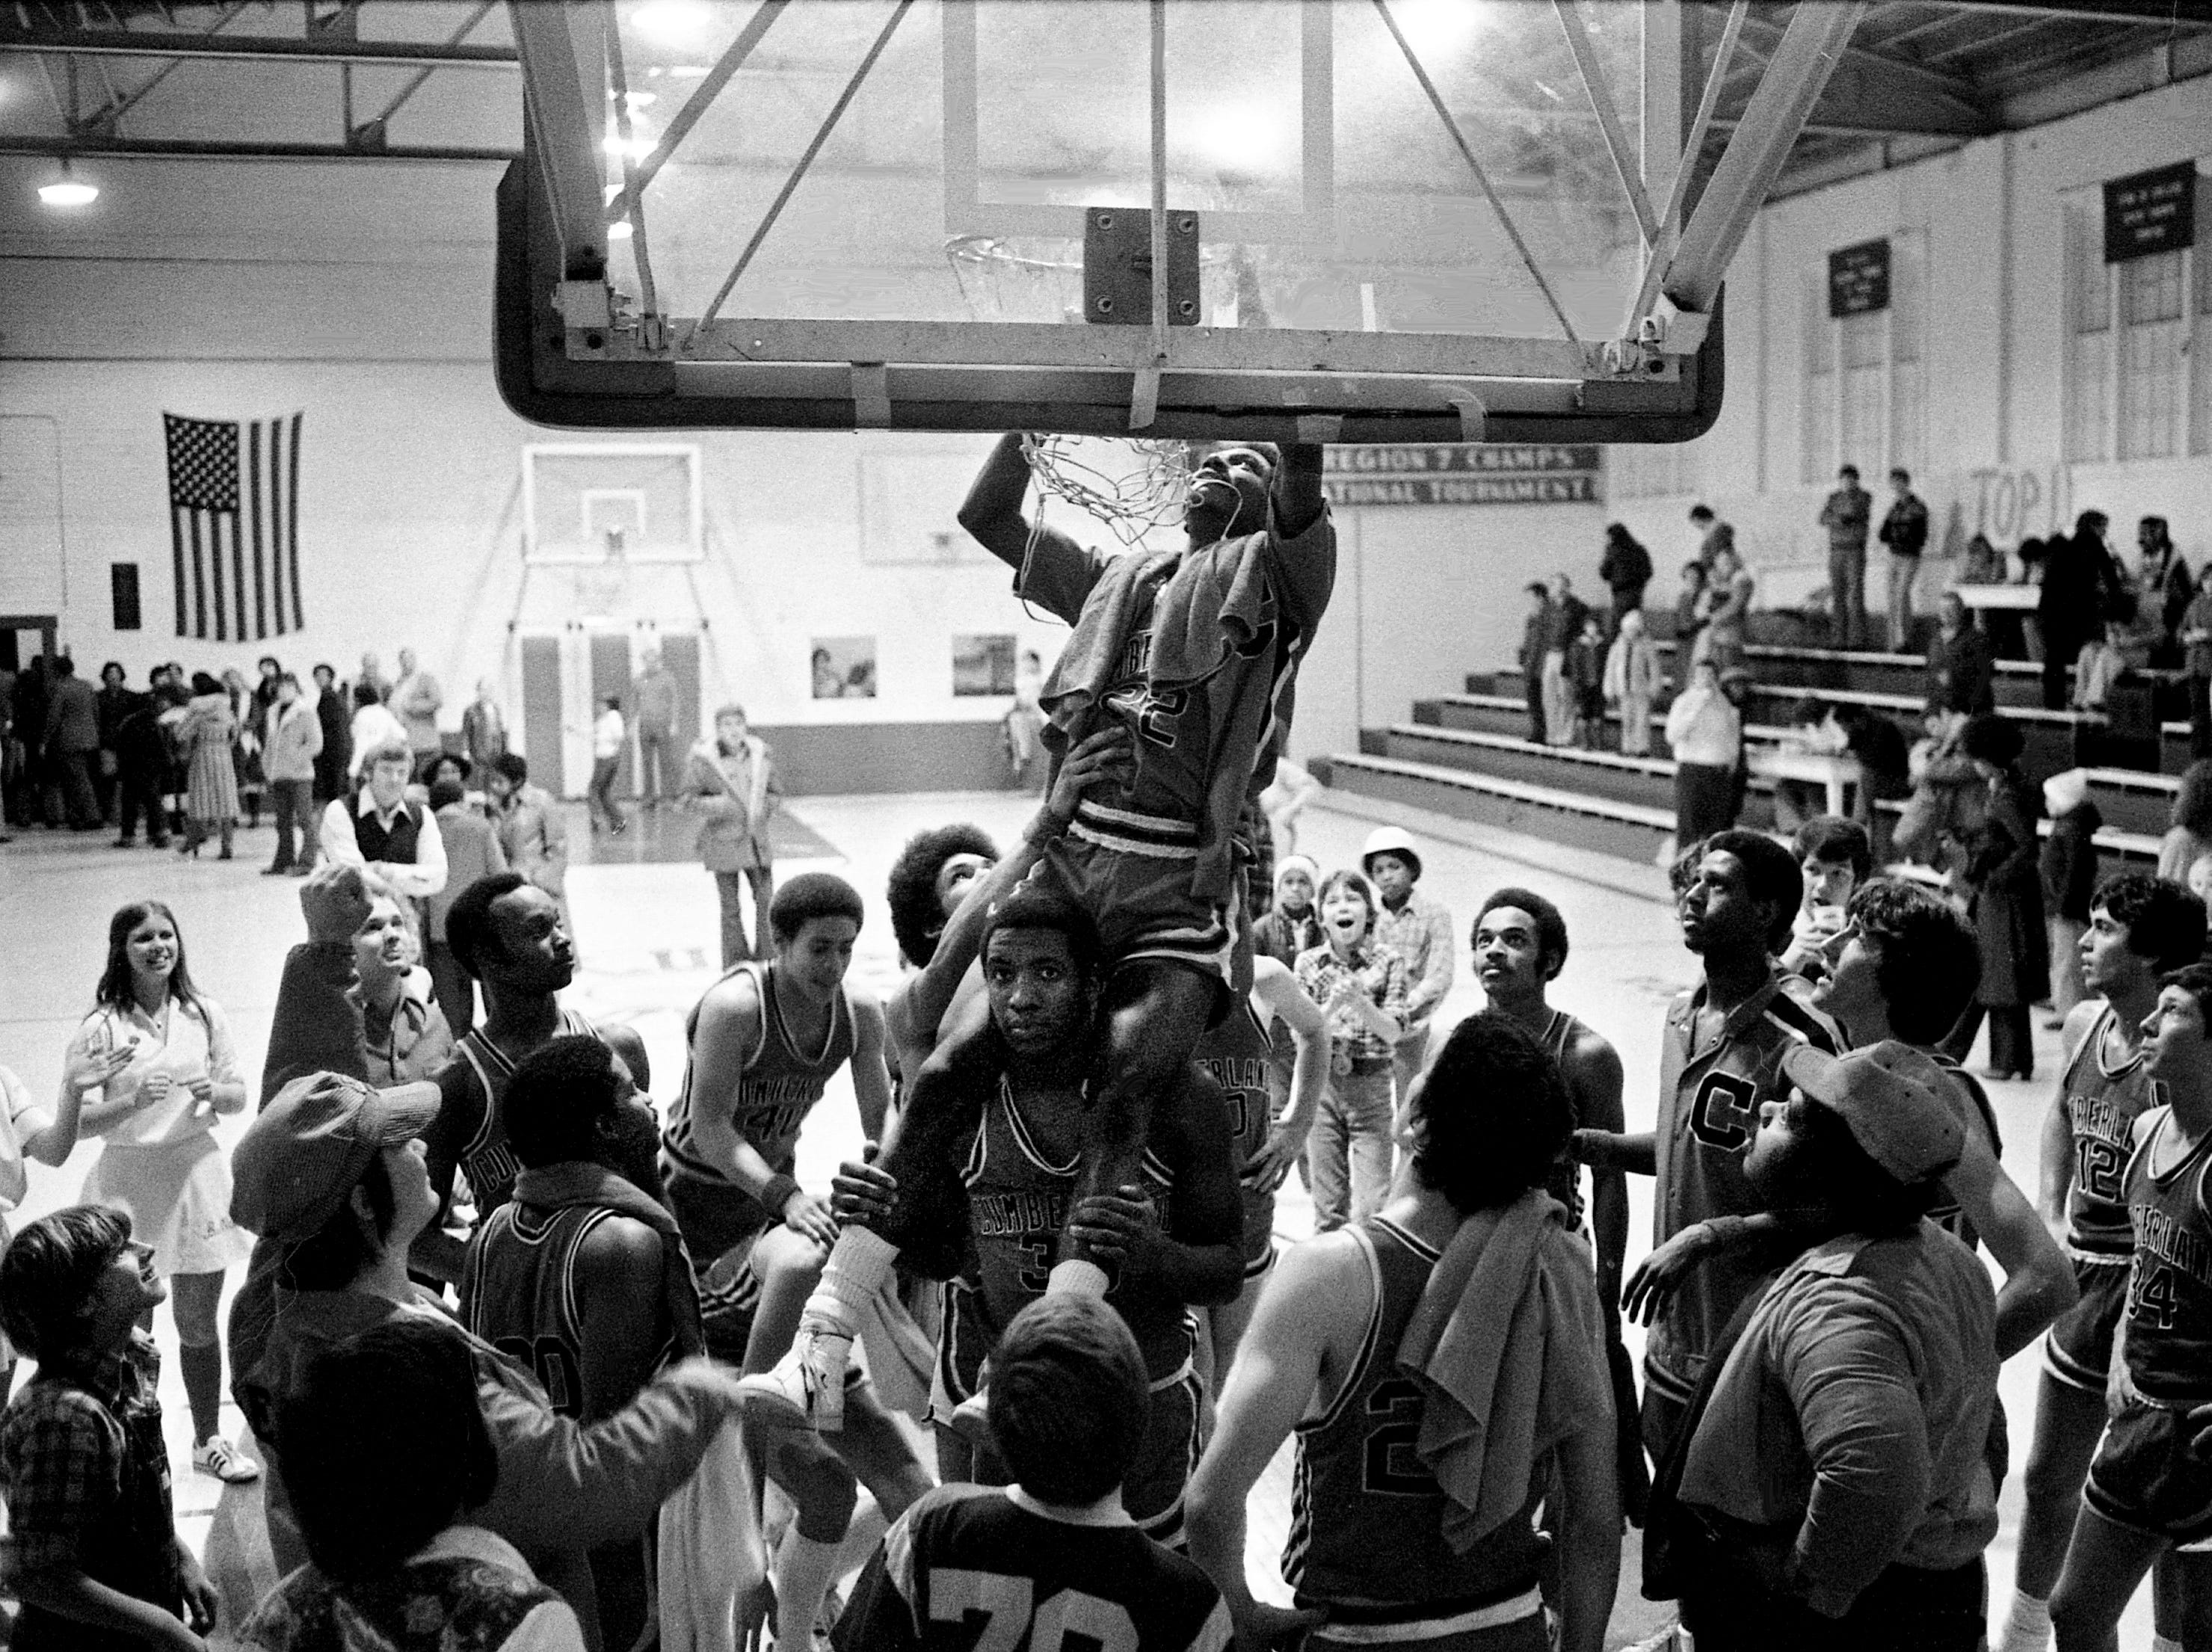 On the shoulders of a teammate, Wendall Bates helps to cut down the net as teammates and fans join in the celebration of Cumberland College's 111-83 win over Chattanooga at home in Lebanon on Feb. 10, 1979. The Bulldogs captured the TJCAA's Eastern Division championship title.